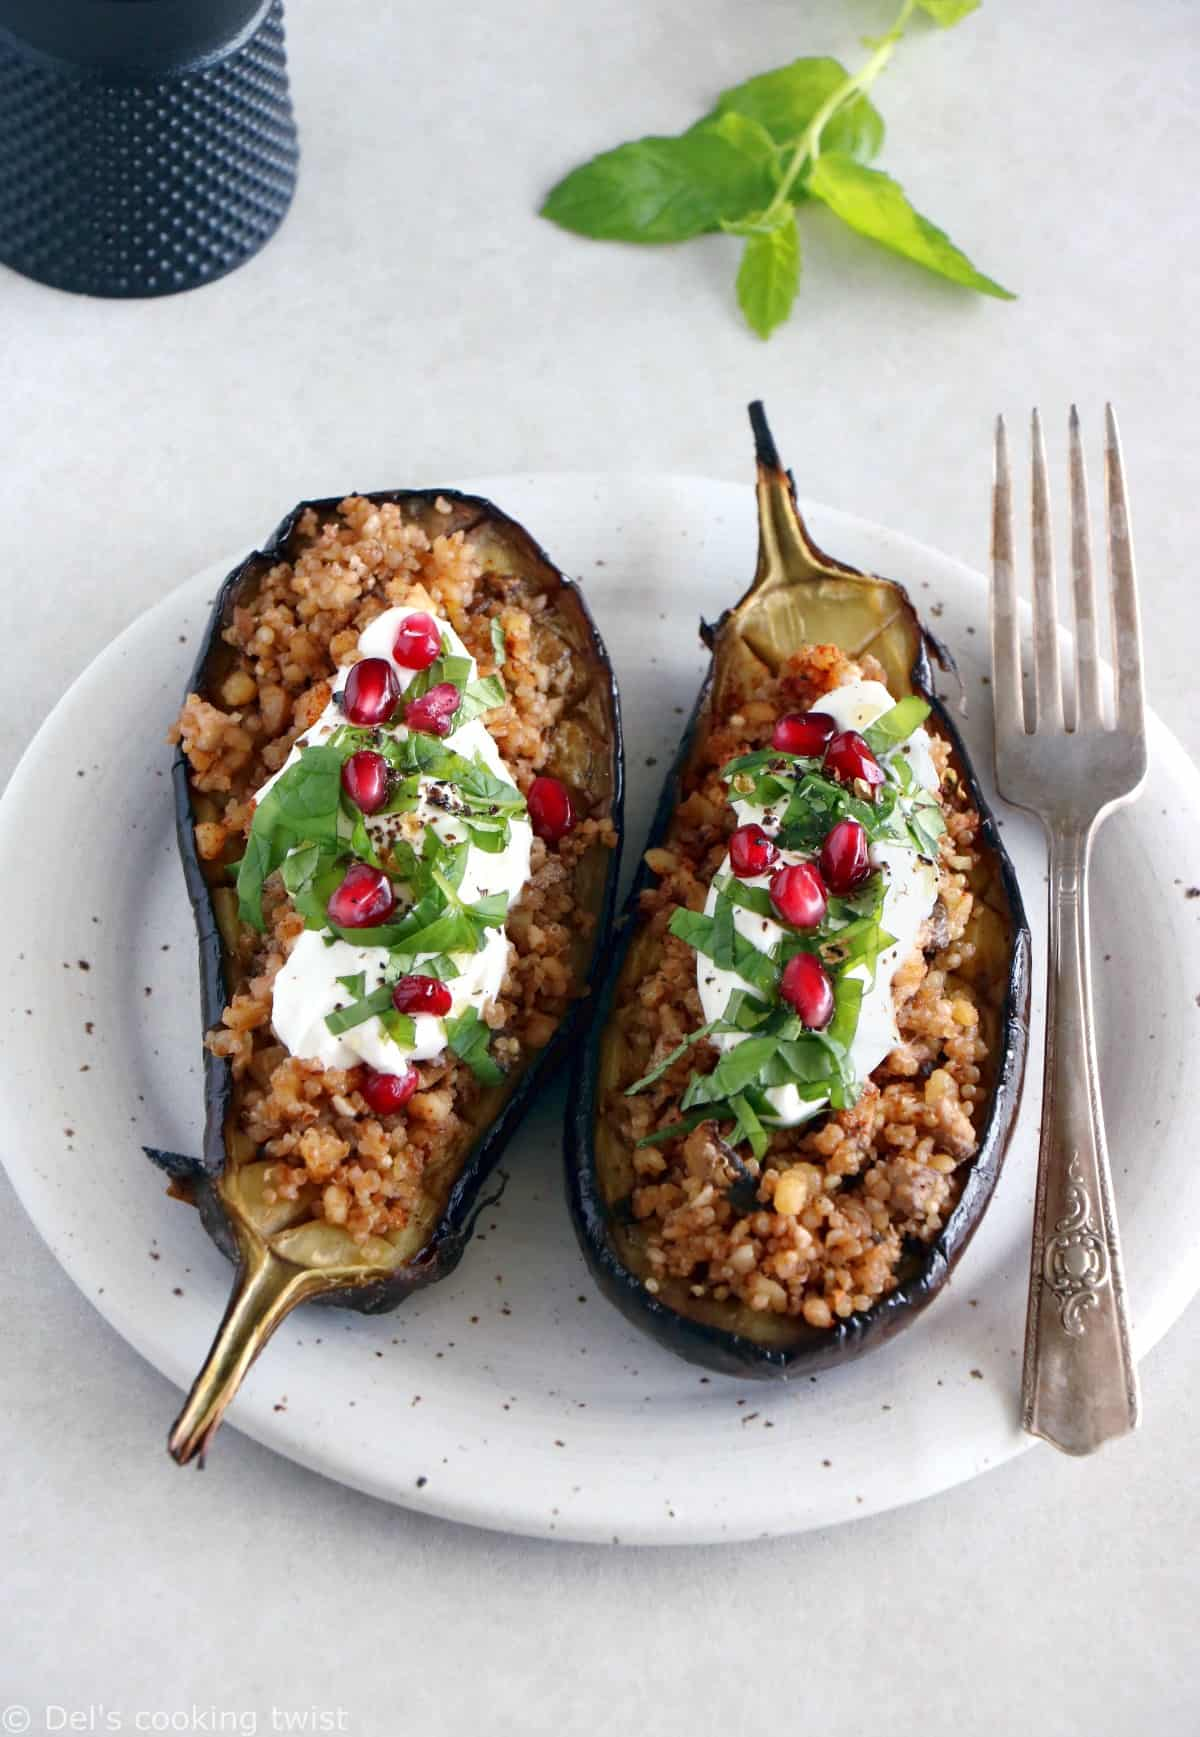 Quinoa Stuffed Eggplant with Mint Yogurt Sauce